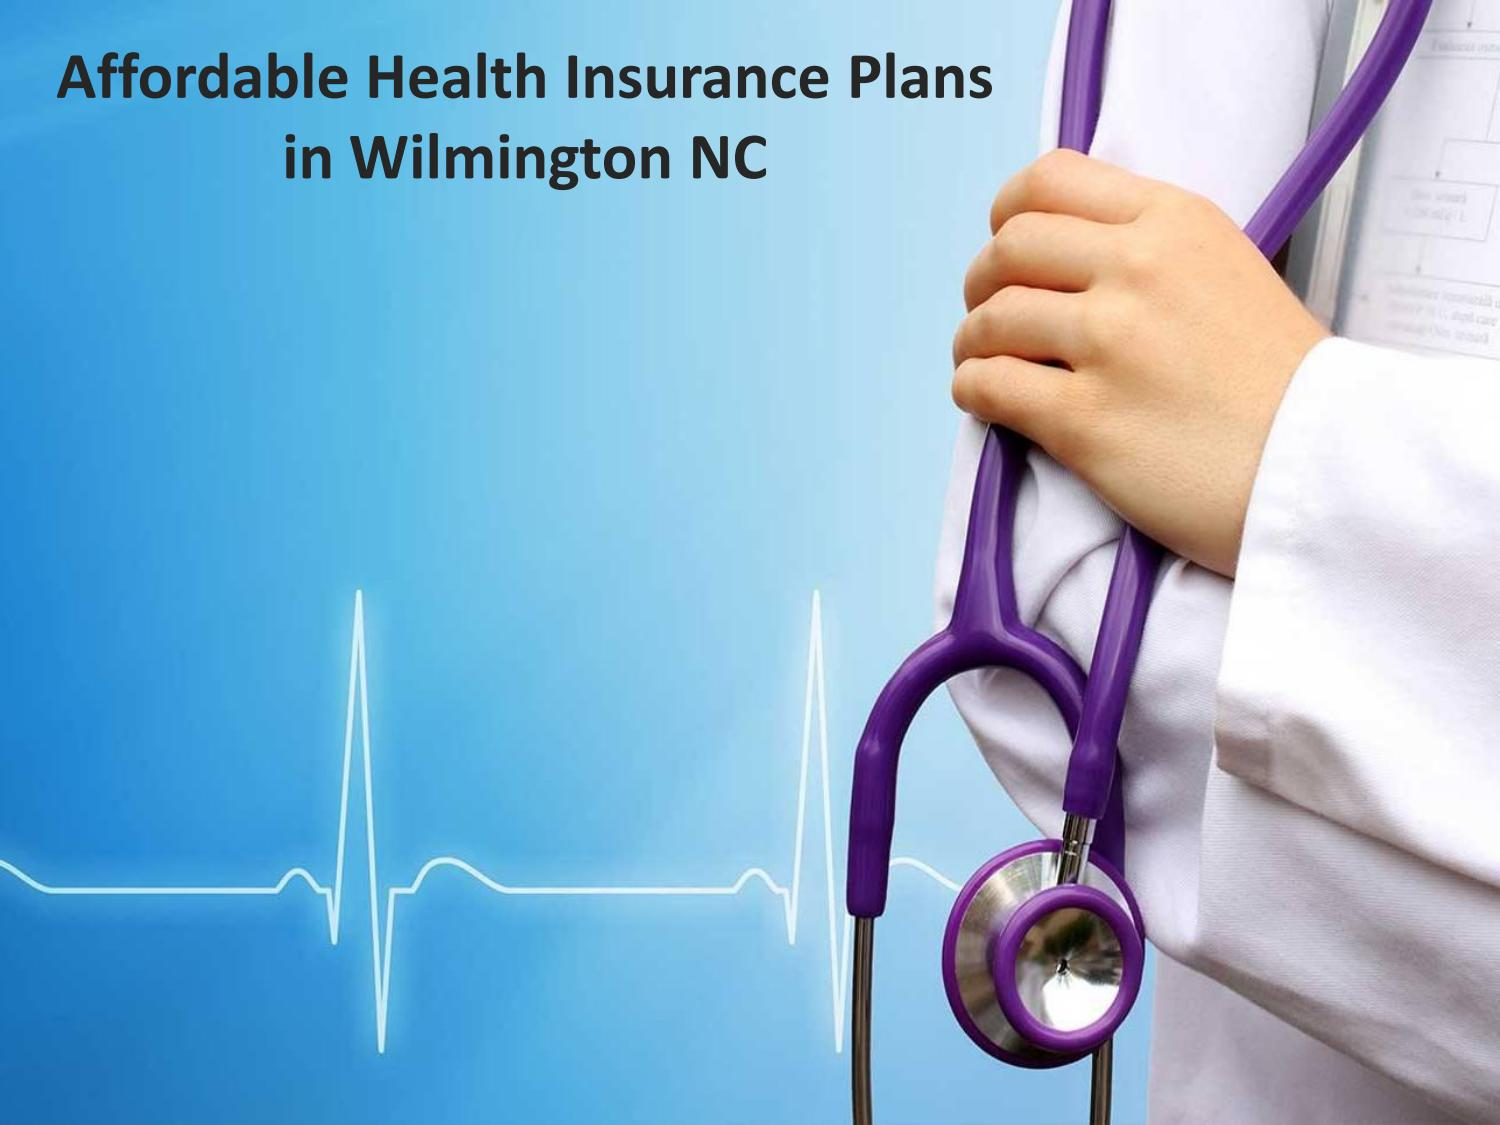 Affordable Health Insurance >> Affordable Health Insurance Plans In Wilmington Nc By